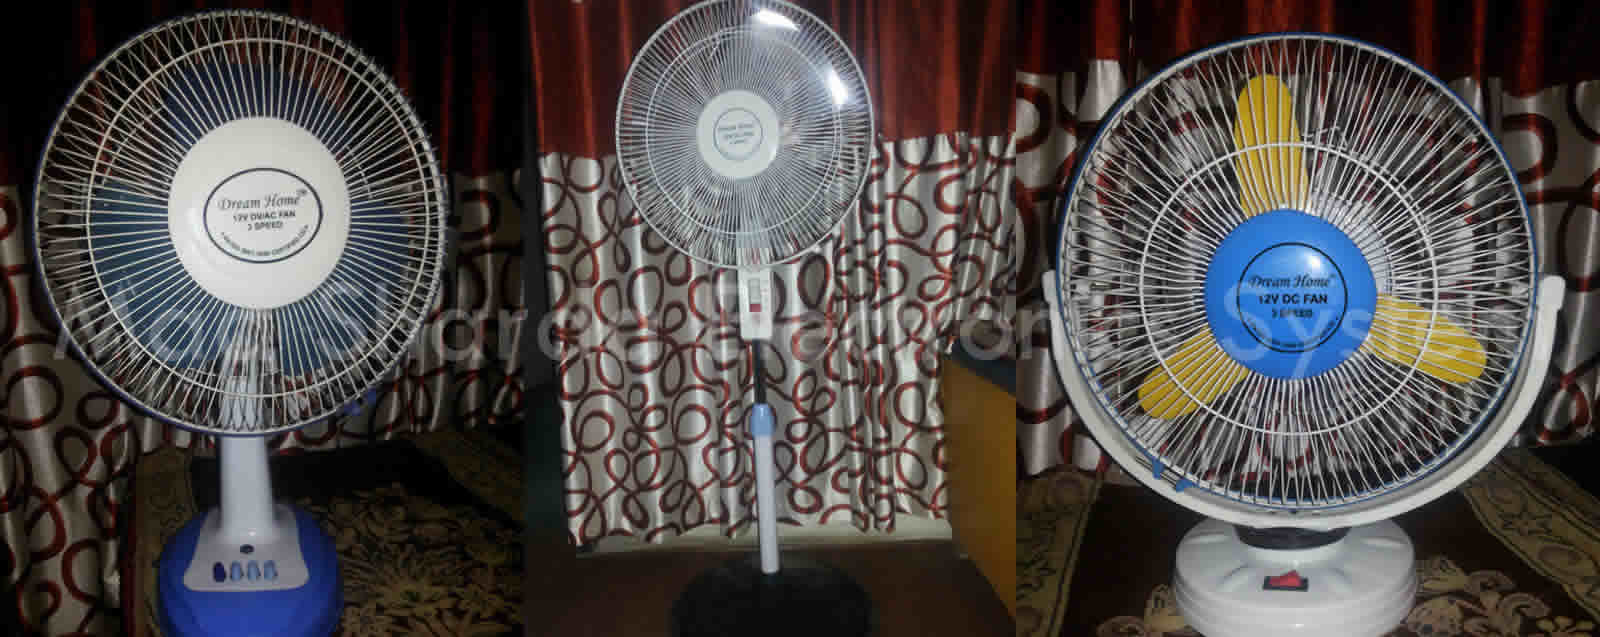 Bldc Ceiling Fan Ceiling Fan Manufacturers Price